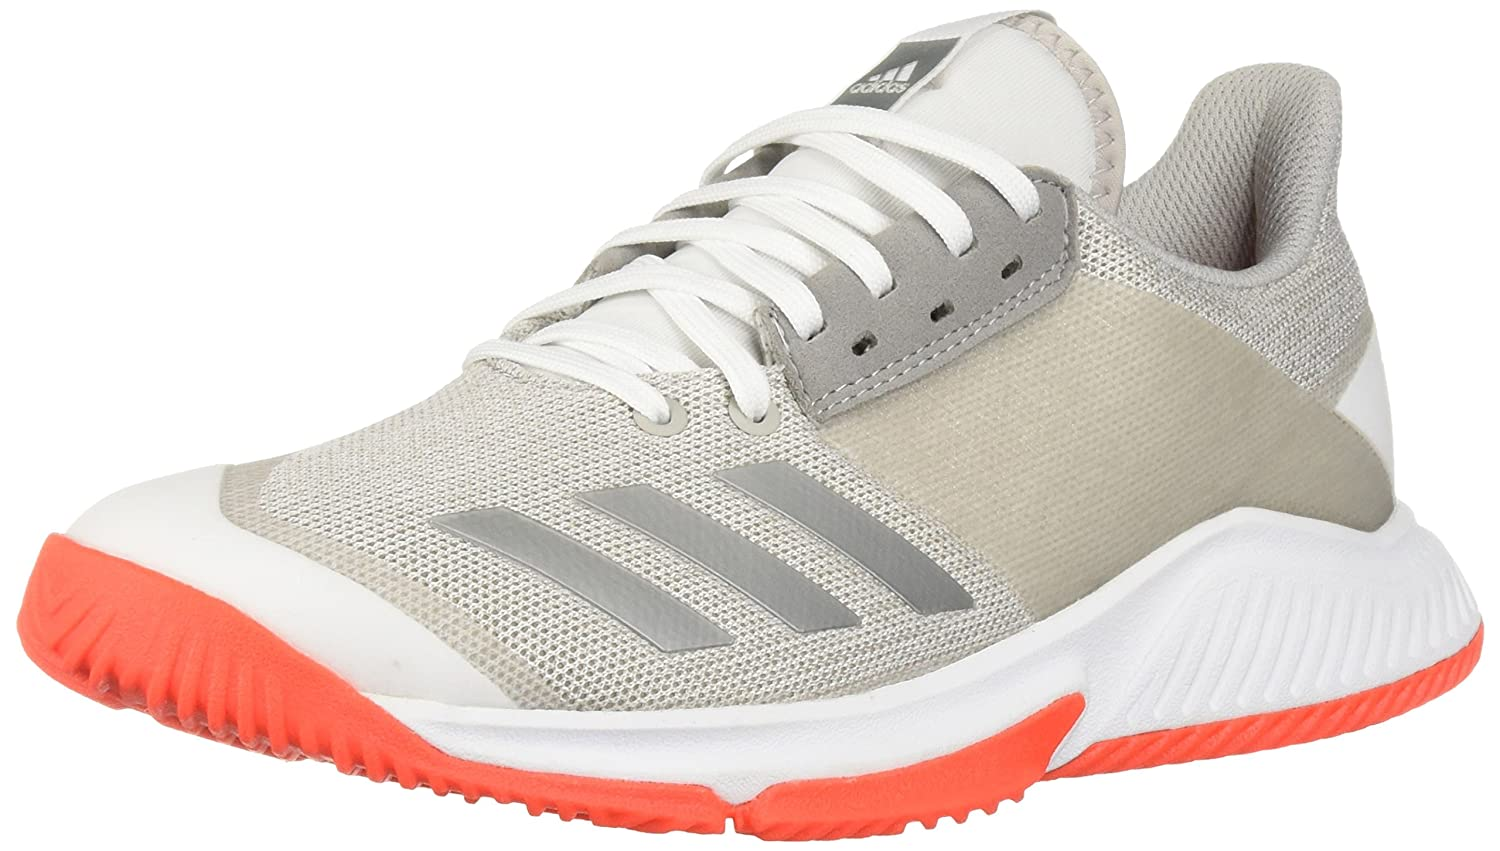 adidas Women's Crazyflight Team Volleyball Shoe B077X47LM9 15 B(M) US|White/Silver Metallic/Grey